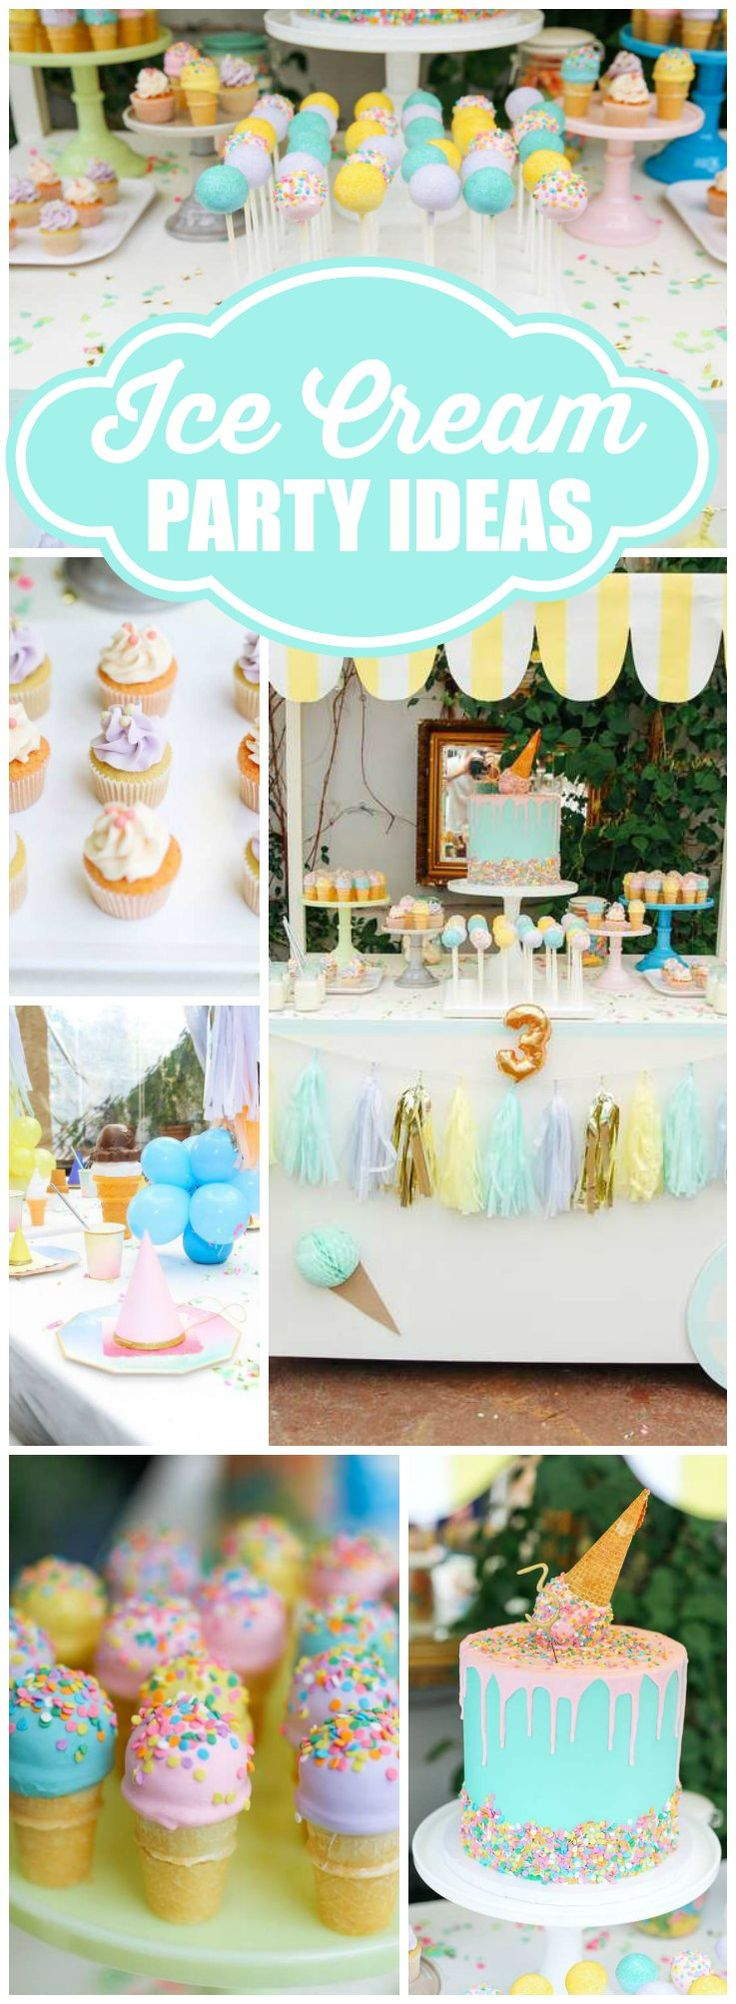 So many amazing details at this ice cream birthday party! See more party ideas at CatchMyParty.com!